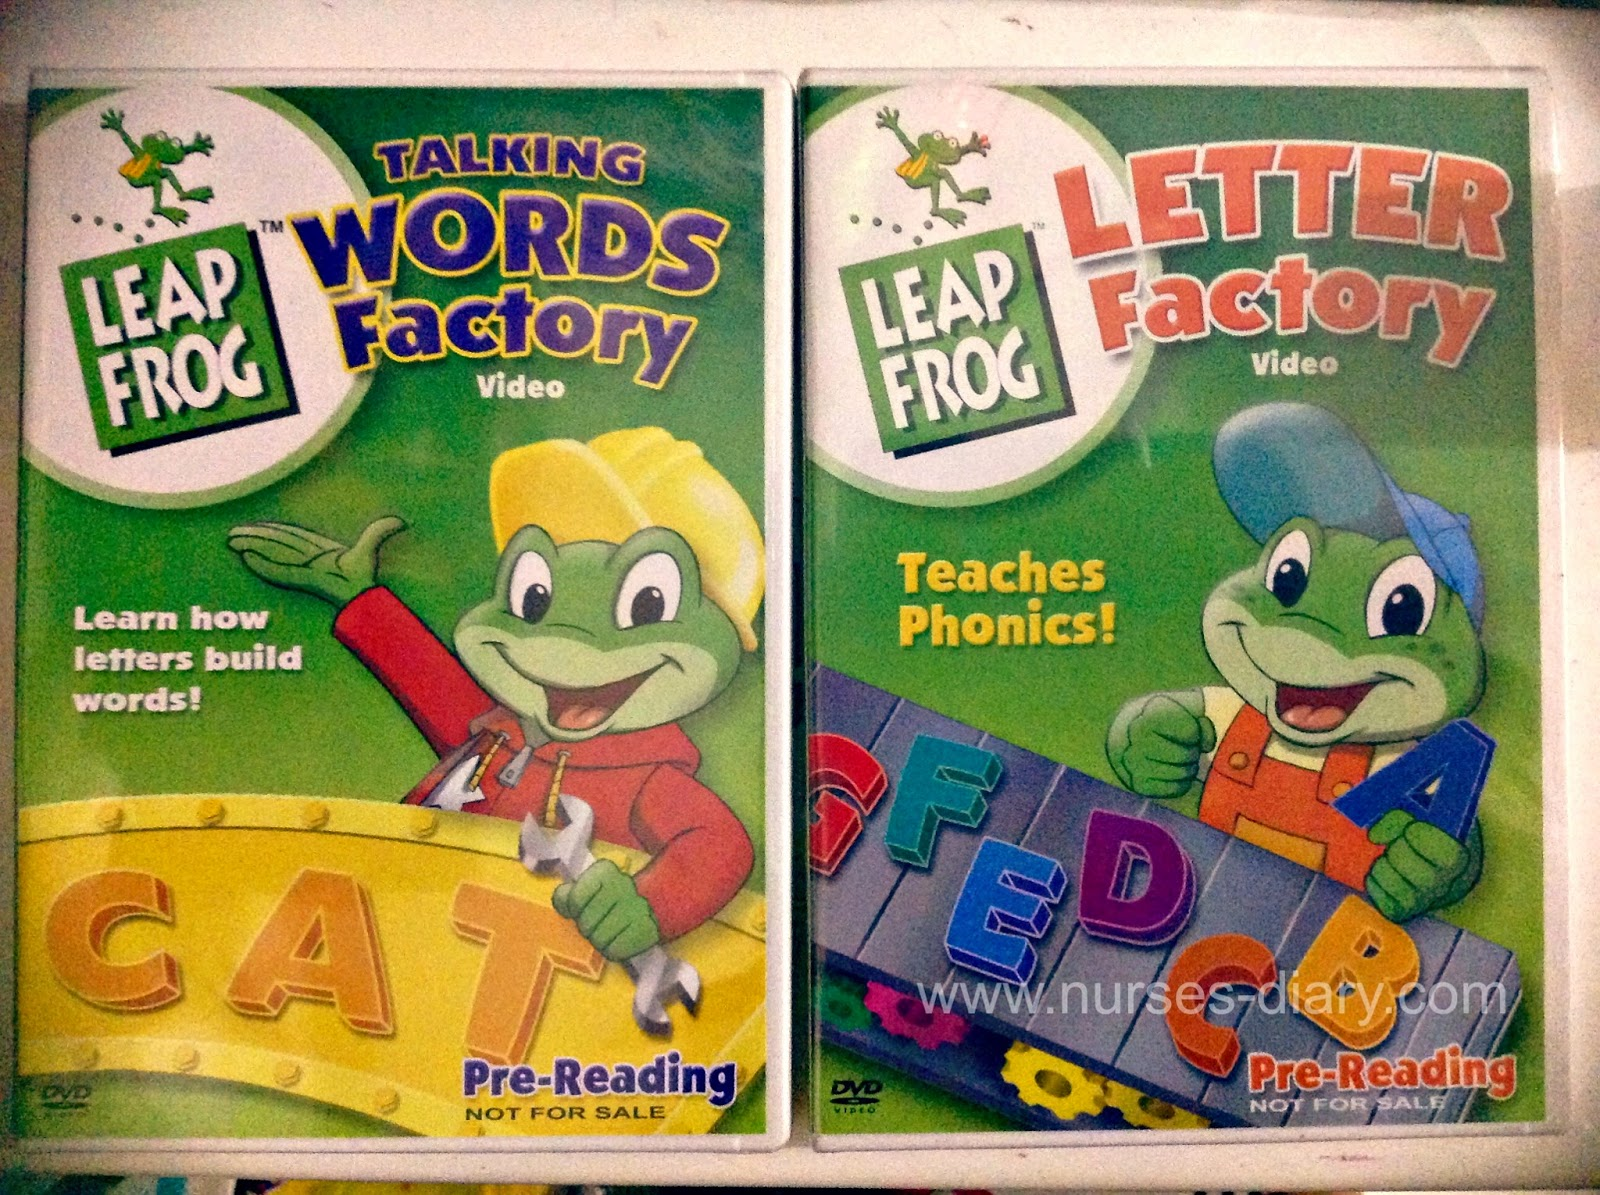 LeapFrog Learning Factory DVD Review